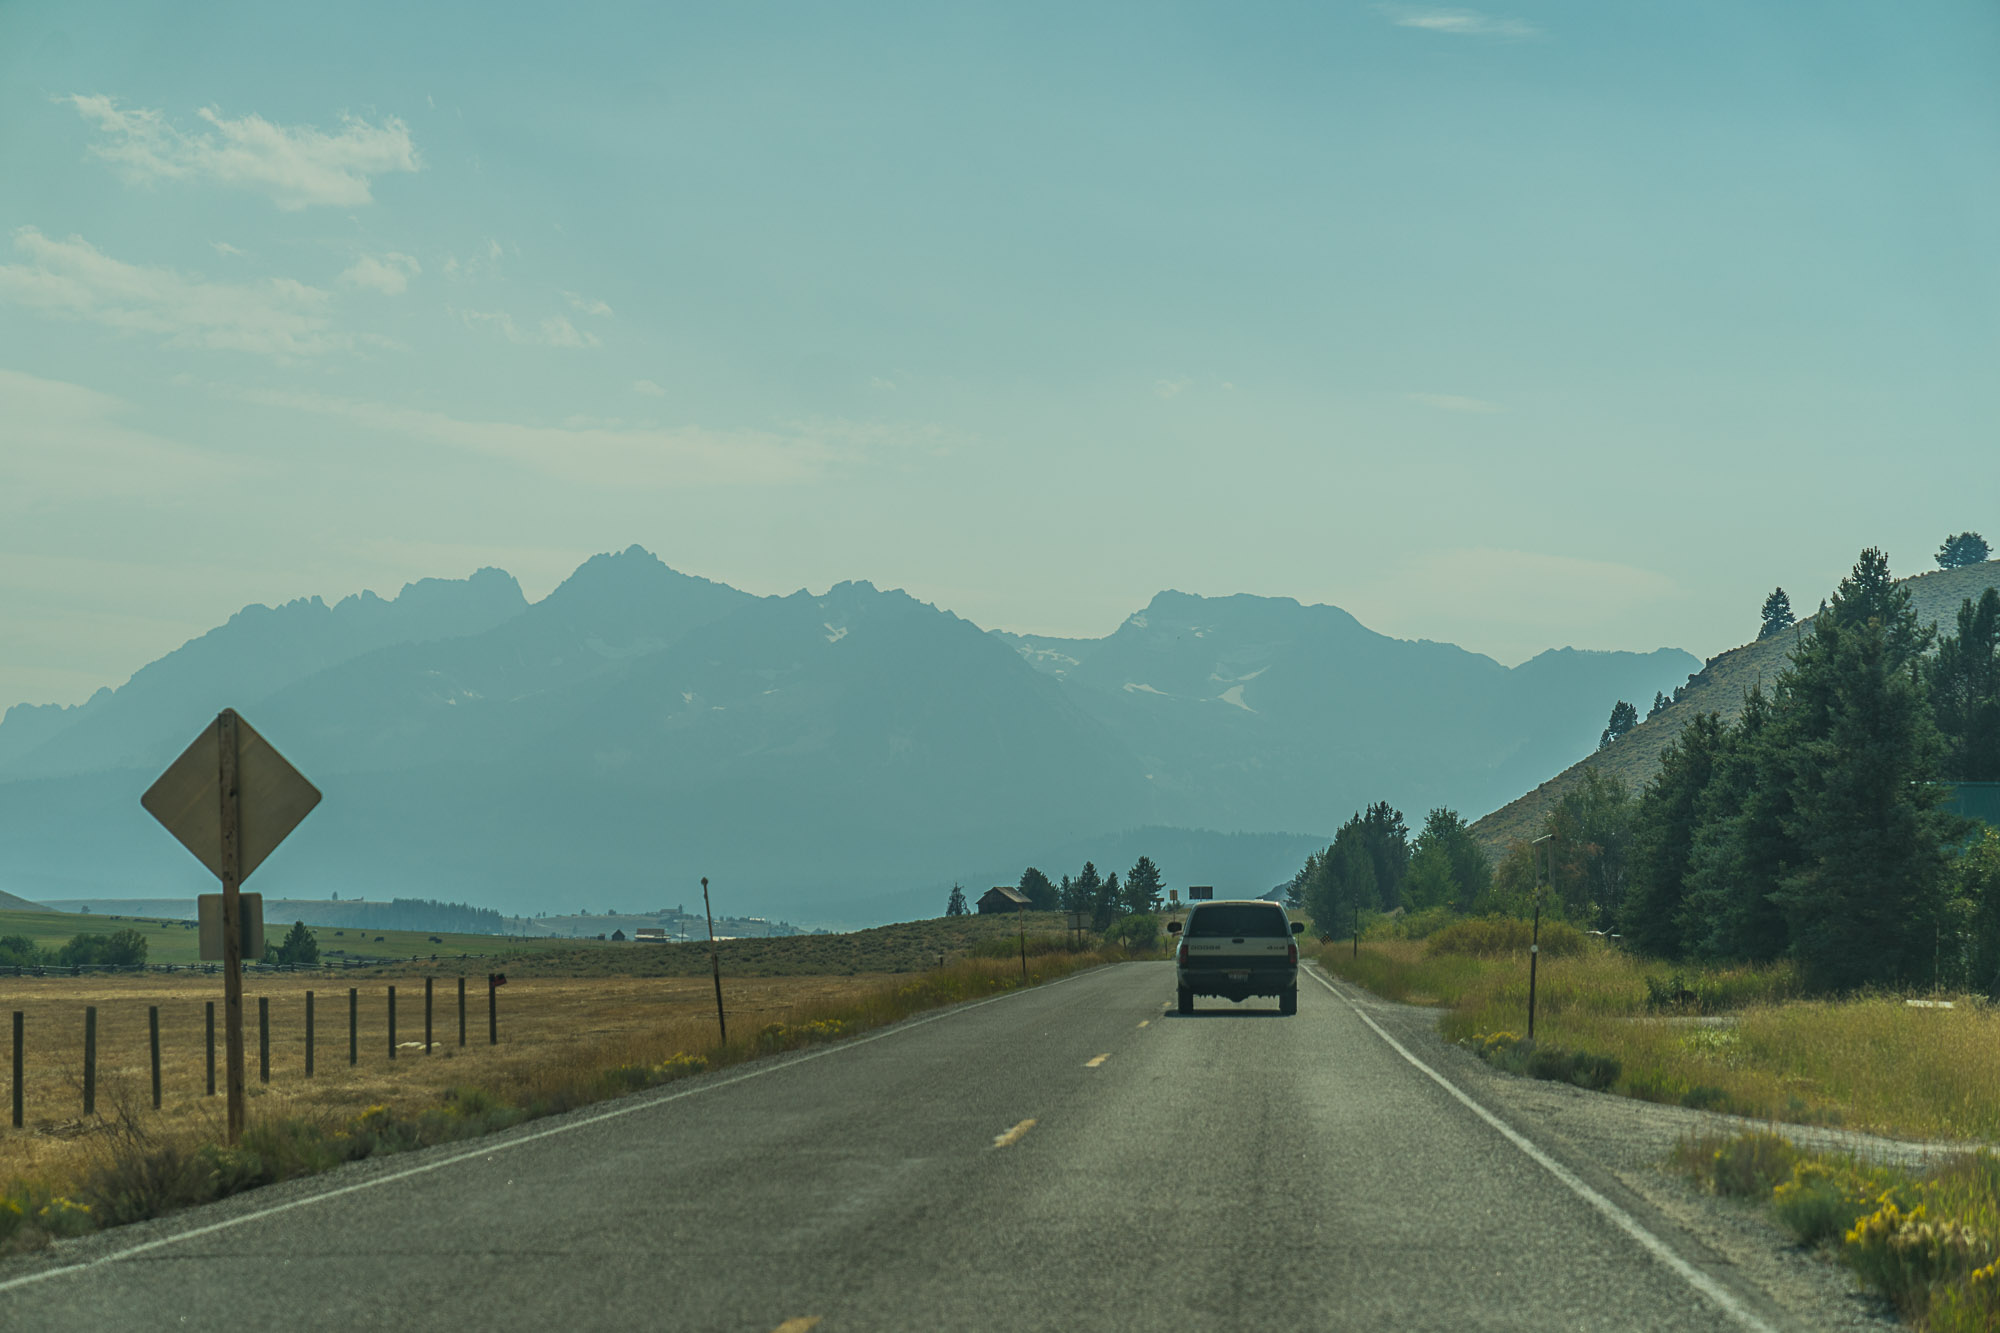 A car drives towards the Sawtooth Mountains on the road into town of Stanley, Idaho.